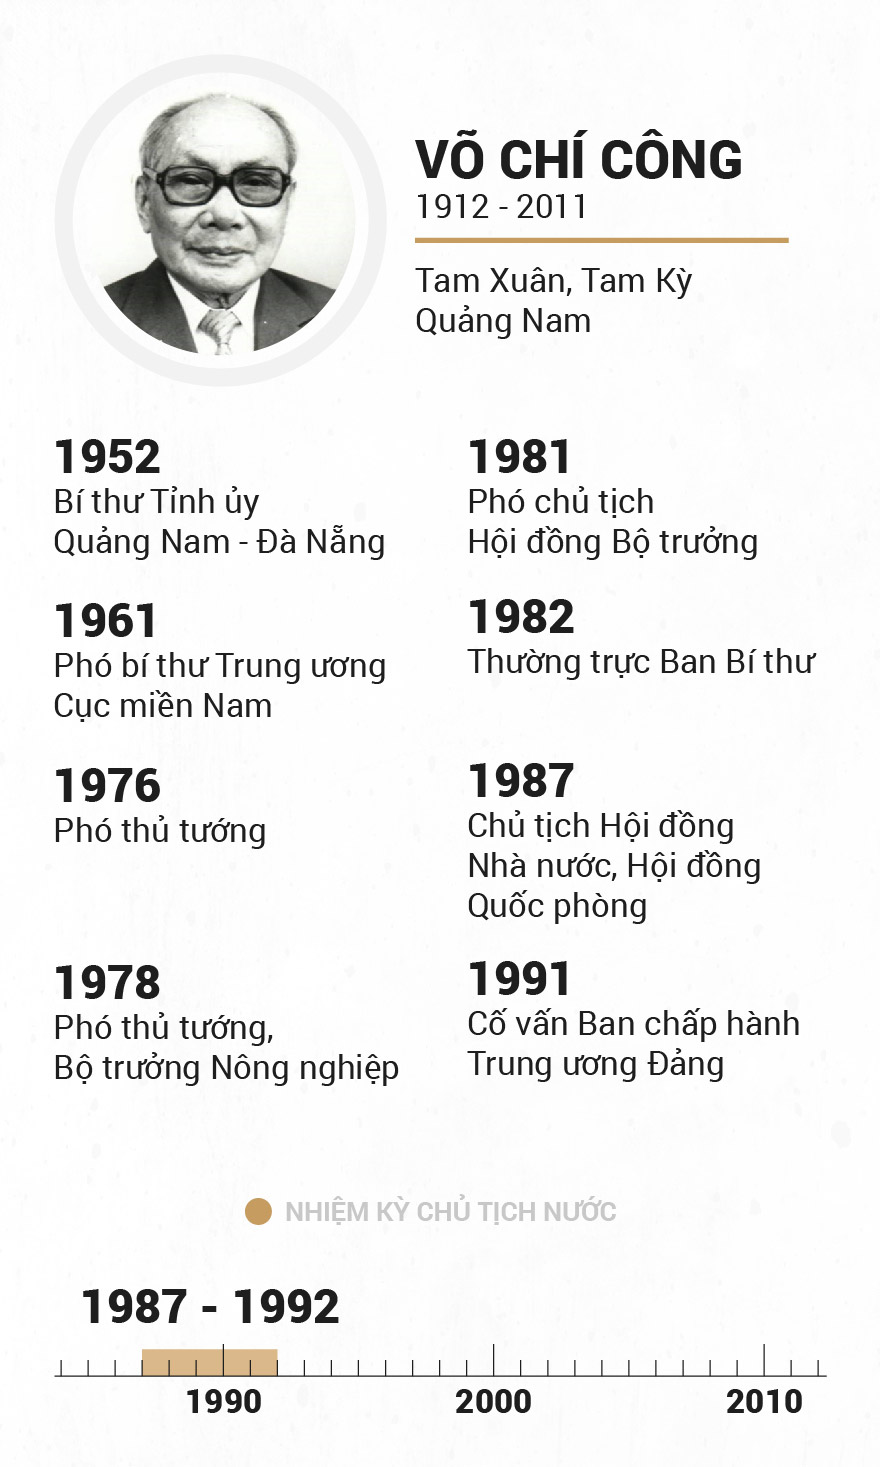 Infographic Chu tich nuoc qua cac thoi ky hinh anh 9